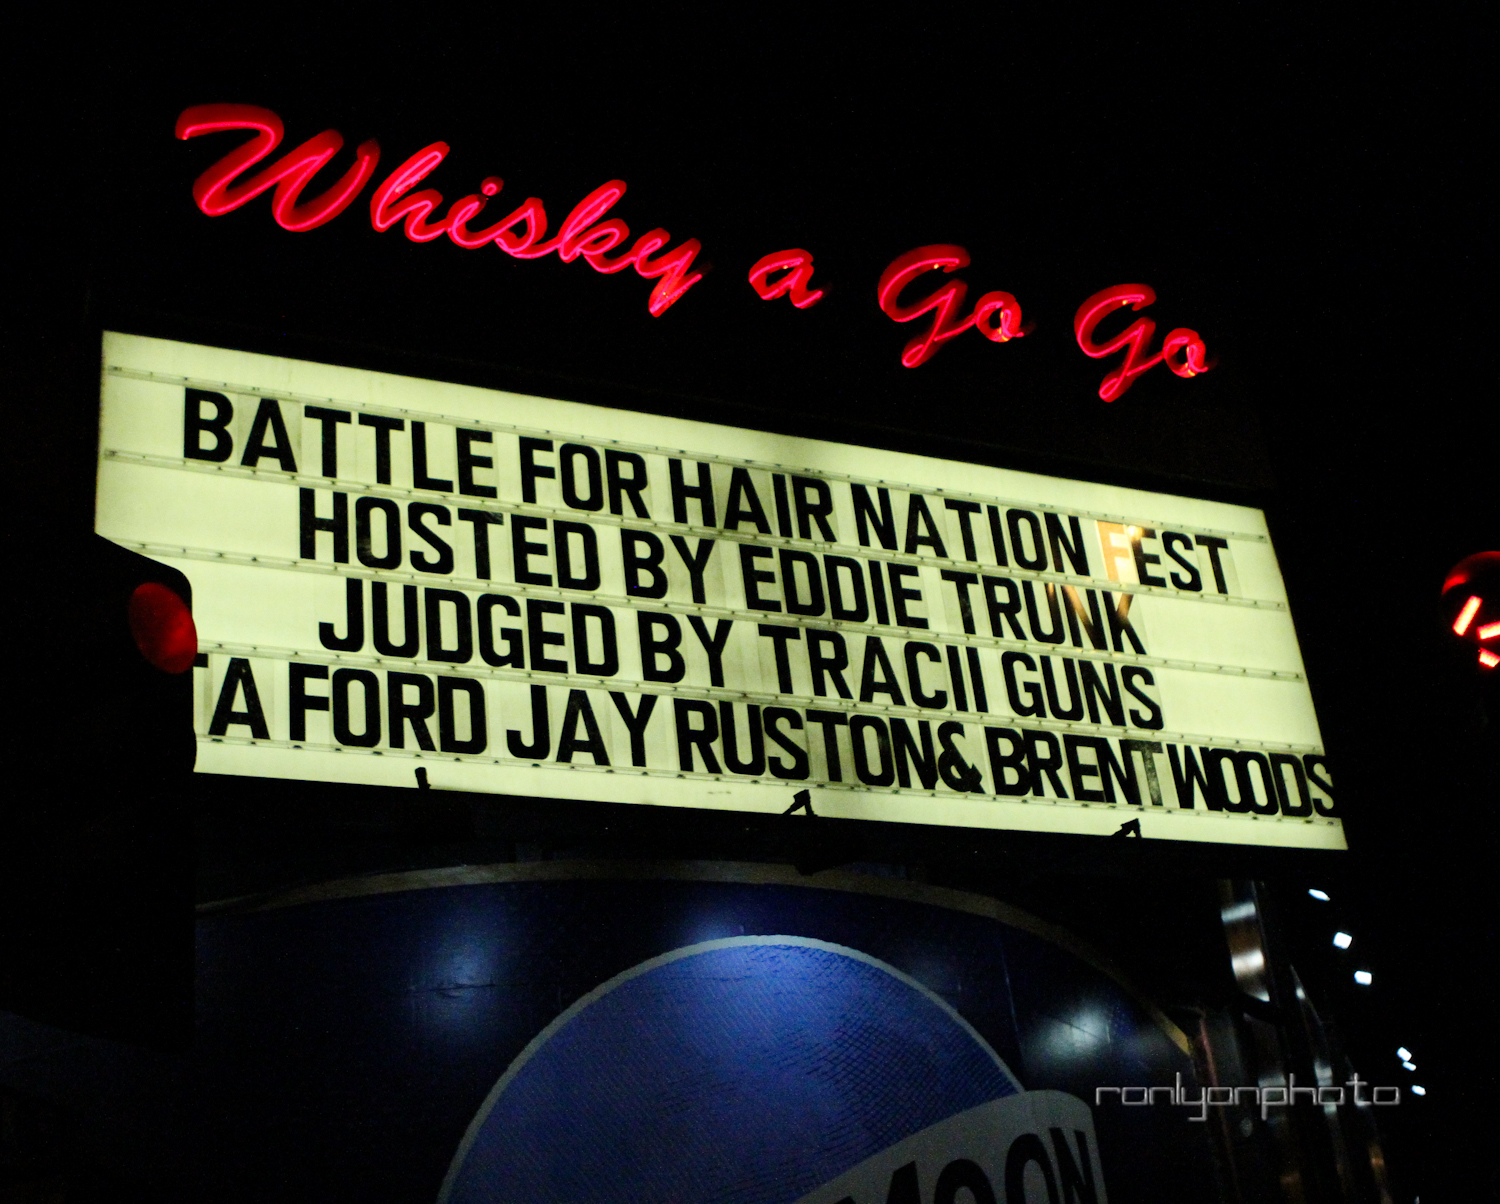 Hair Nation Battle of the Bands at the Whisky A Go-Go in West Hollywood, CA on Wednesday, August 16th, 2016. © 2016 Ron Lyon Photo